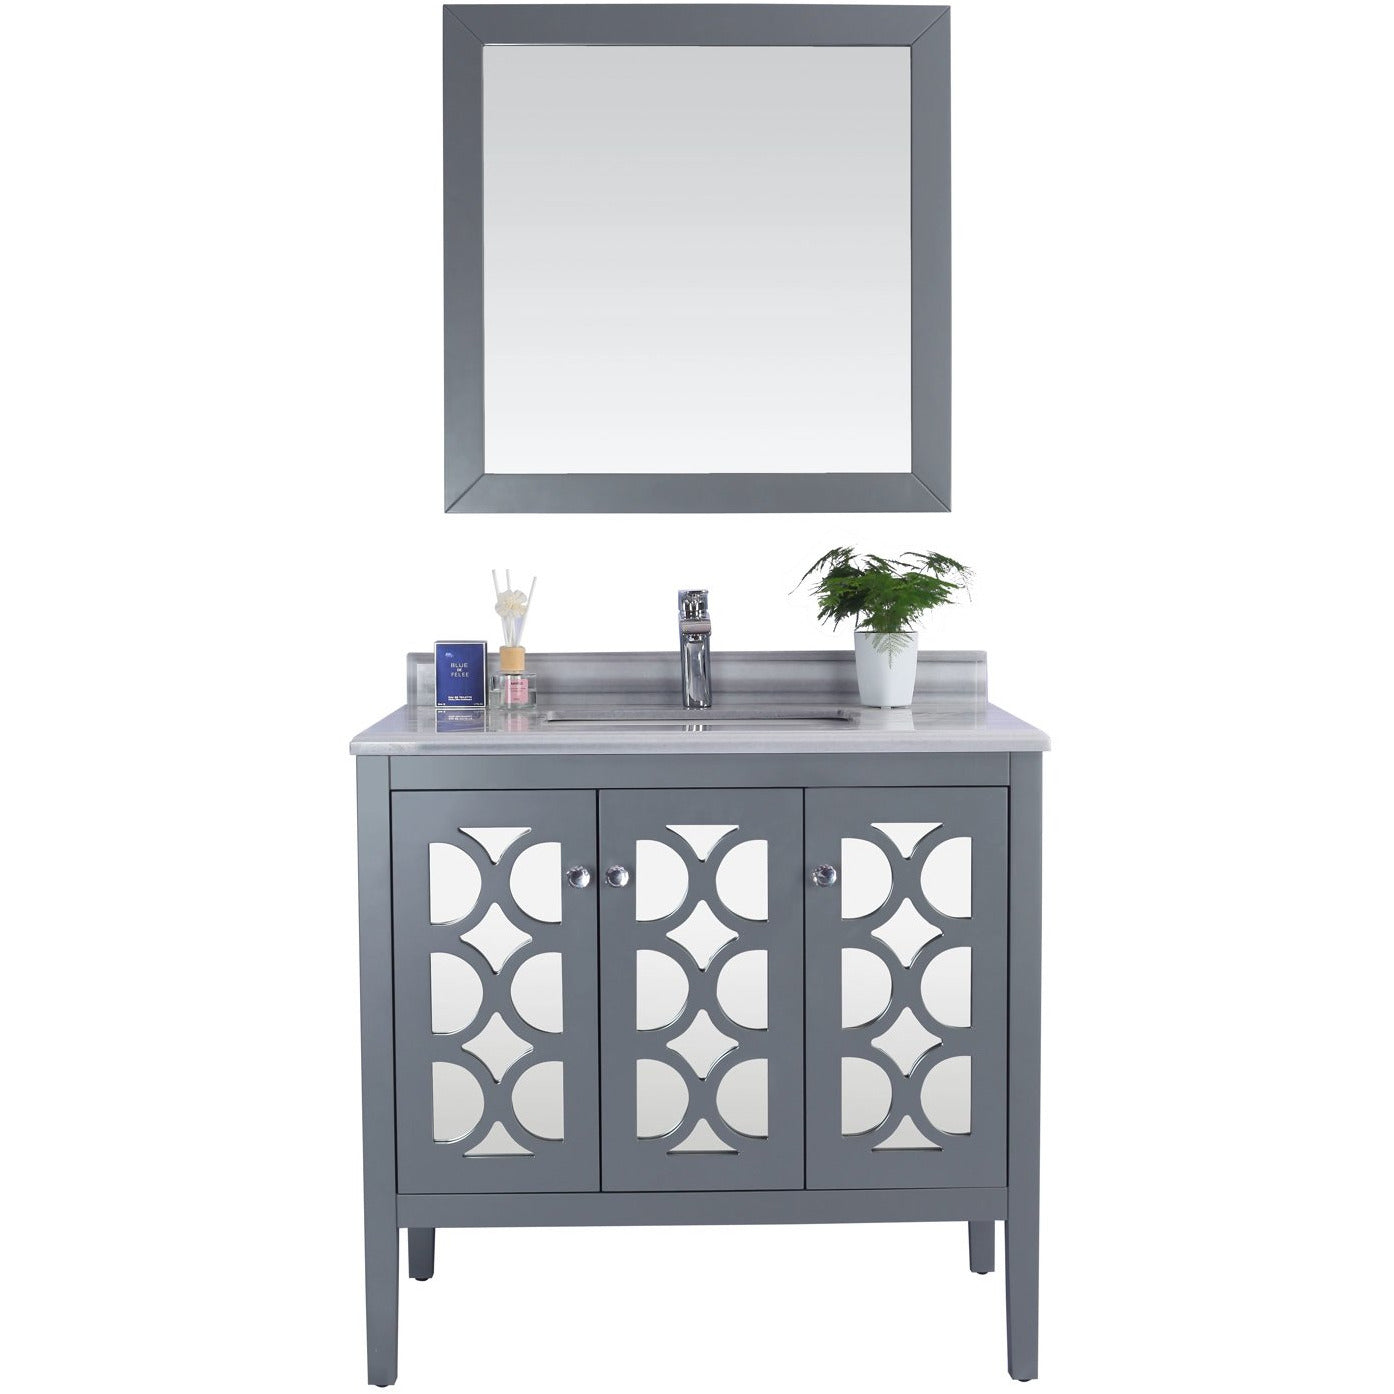 Mediterraneo - 36 - Grey Cabinet + White Stripes Counter by Laviva